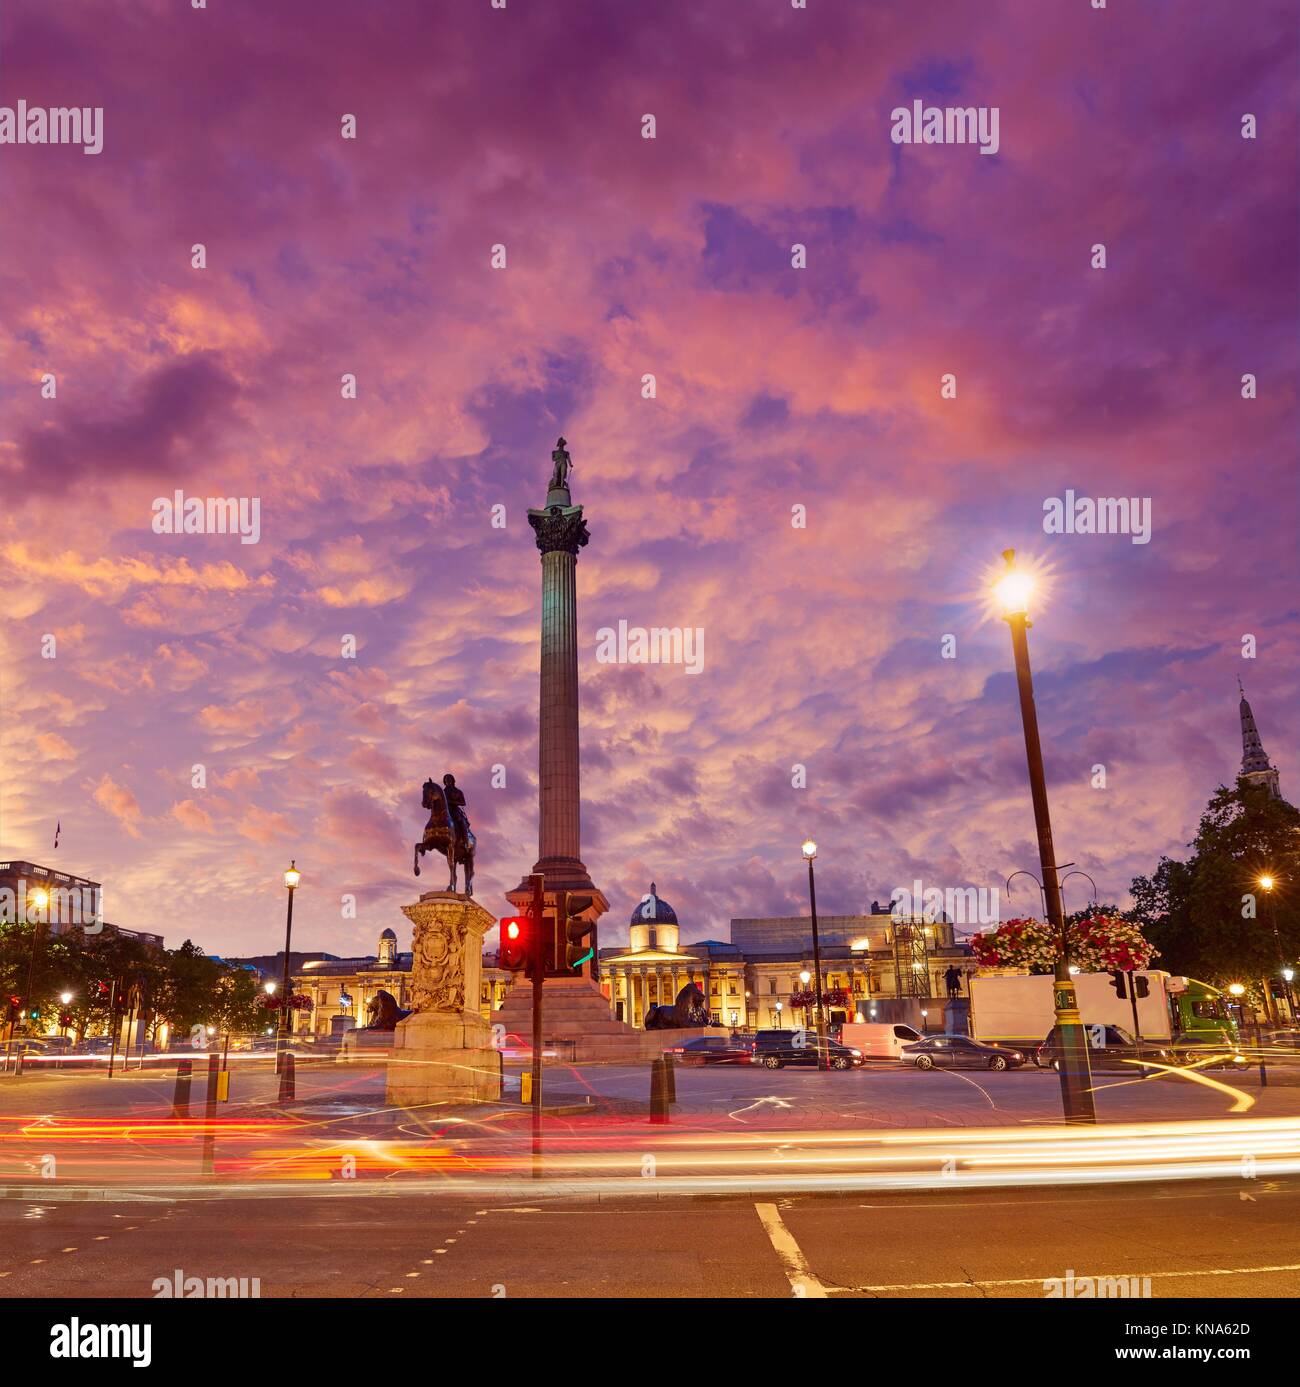 London Trafalgar Square sunset Nelson column in England. Stock Photo